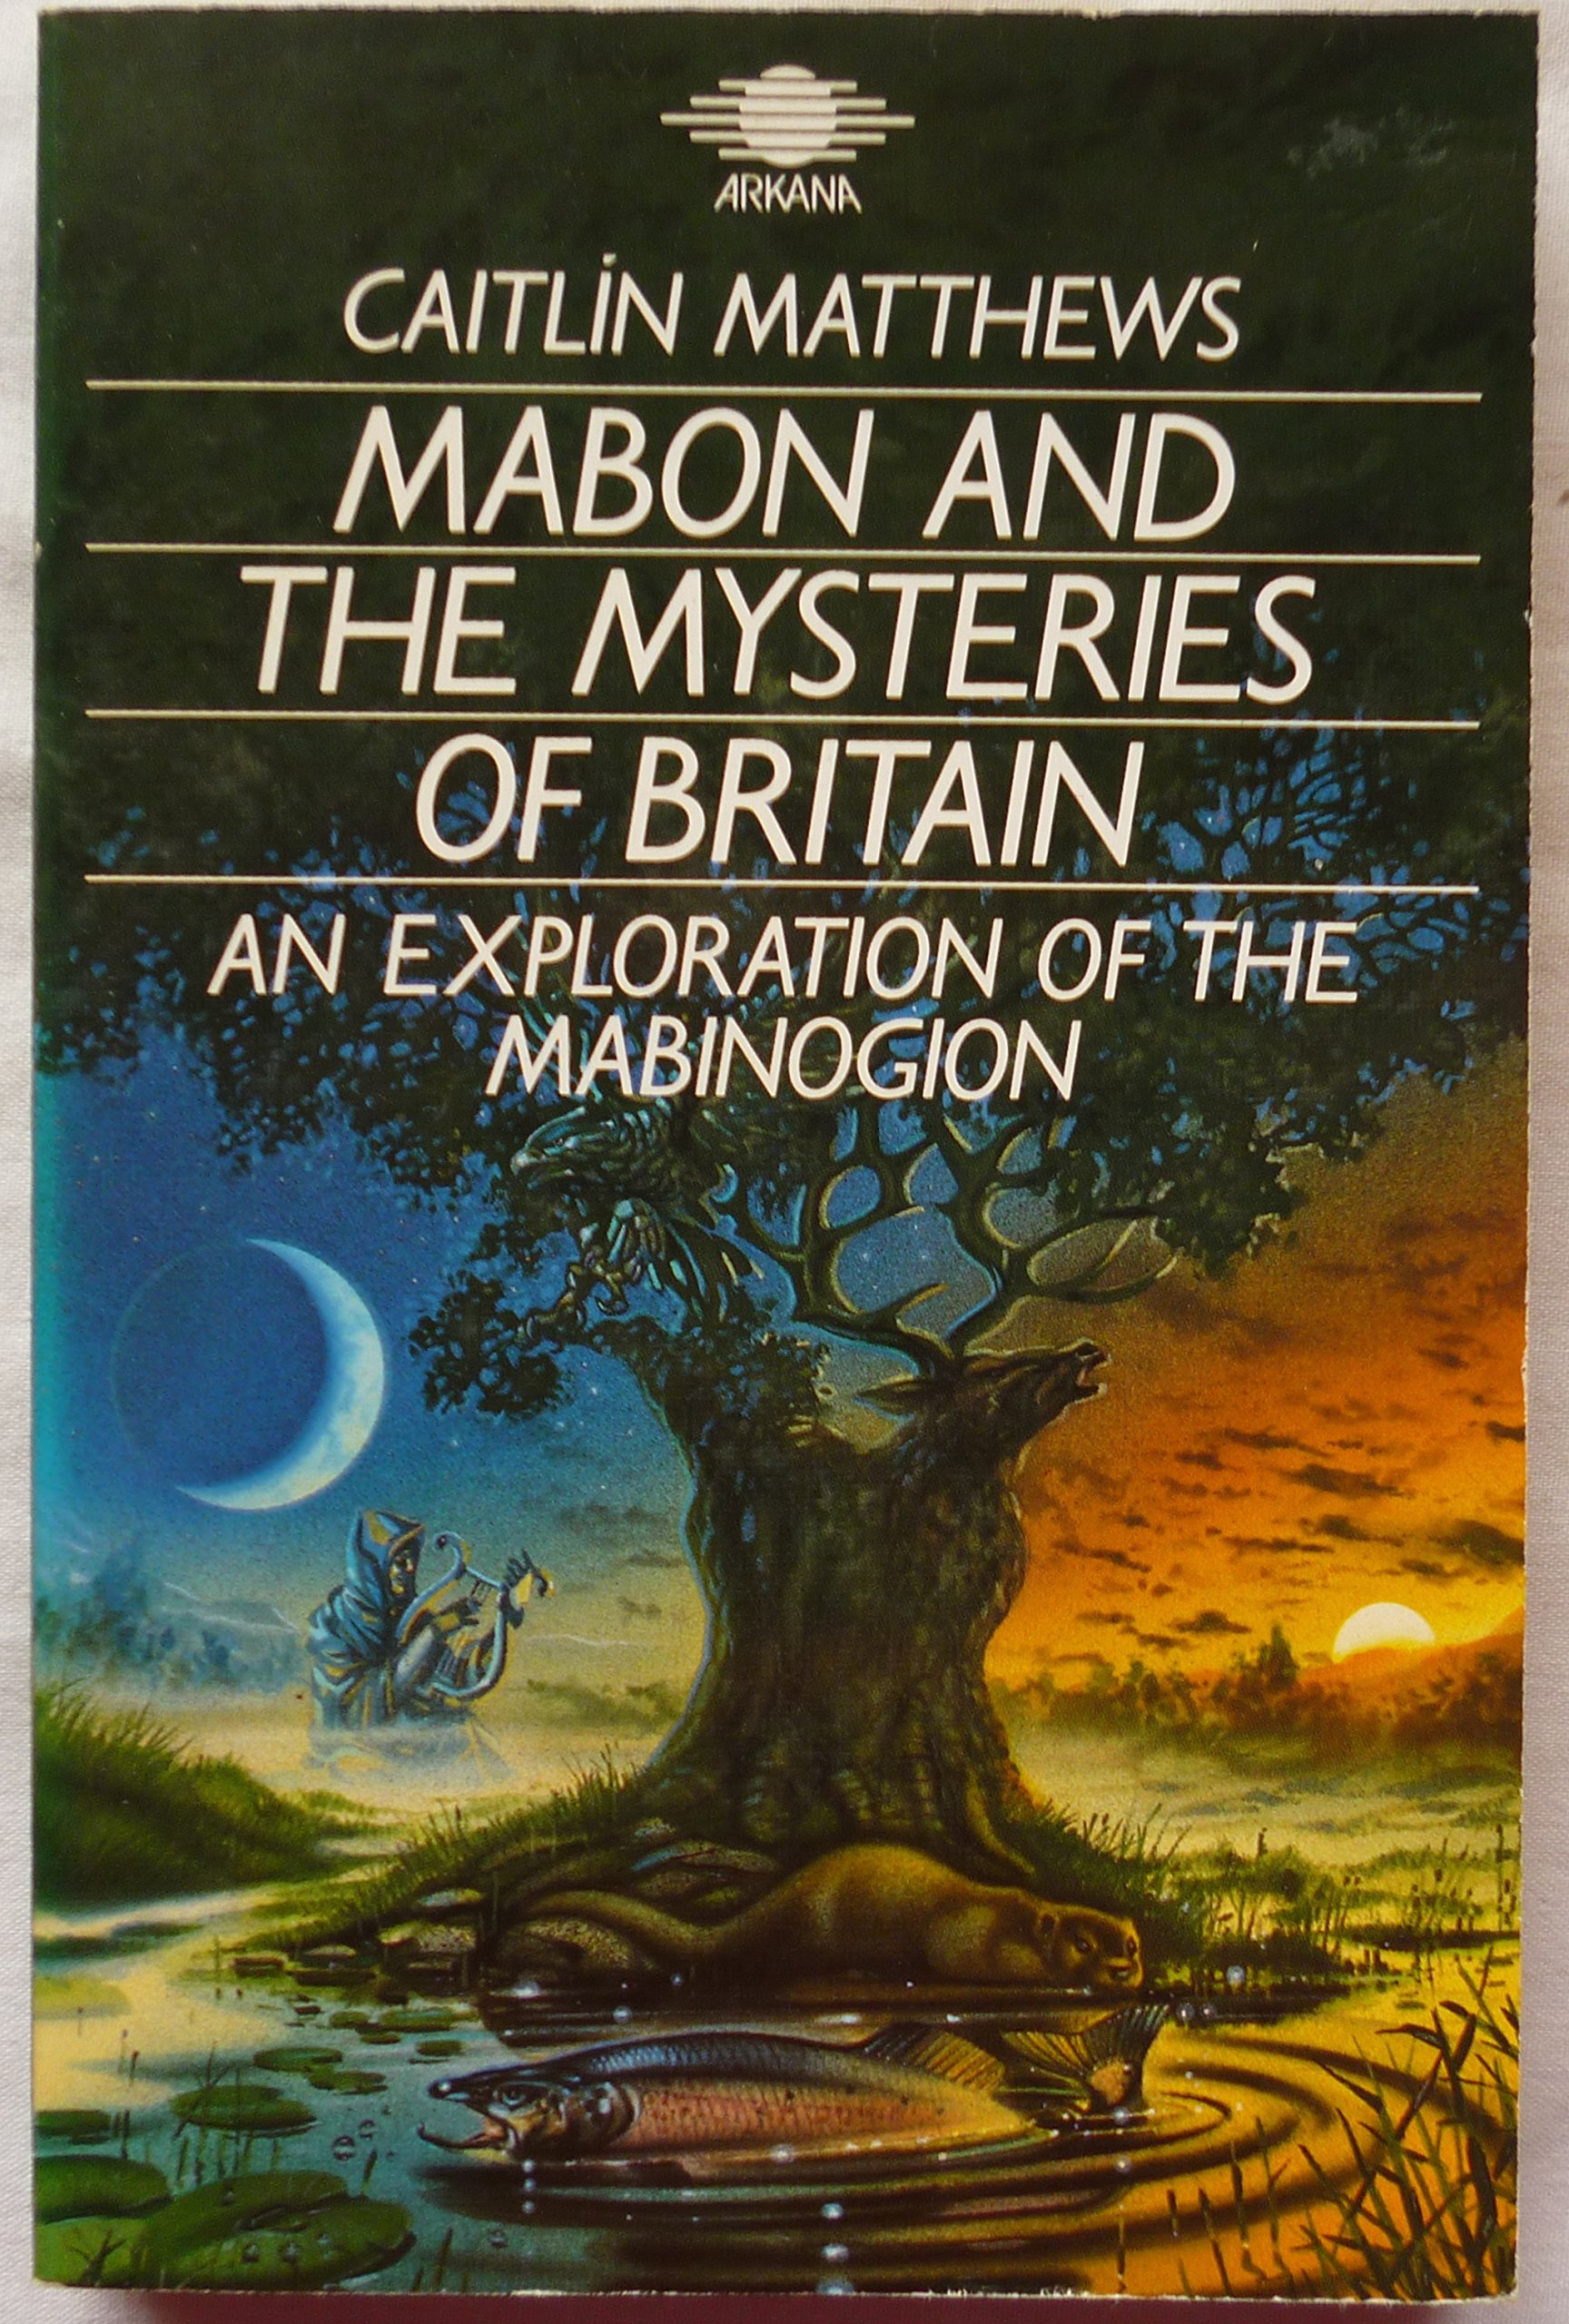 mabon-and-the-mysteries-of-britain-an-exploration-of-the-mabinogion